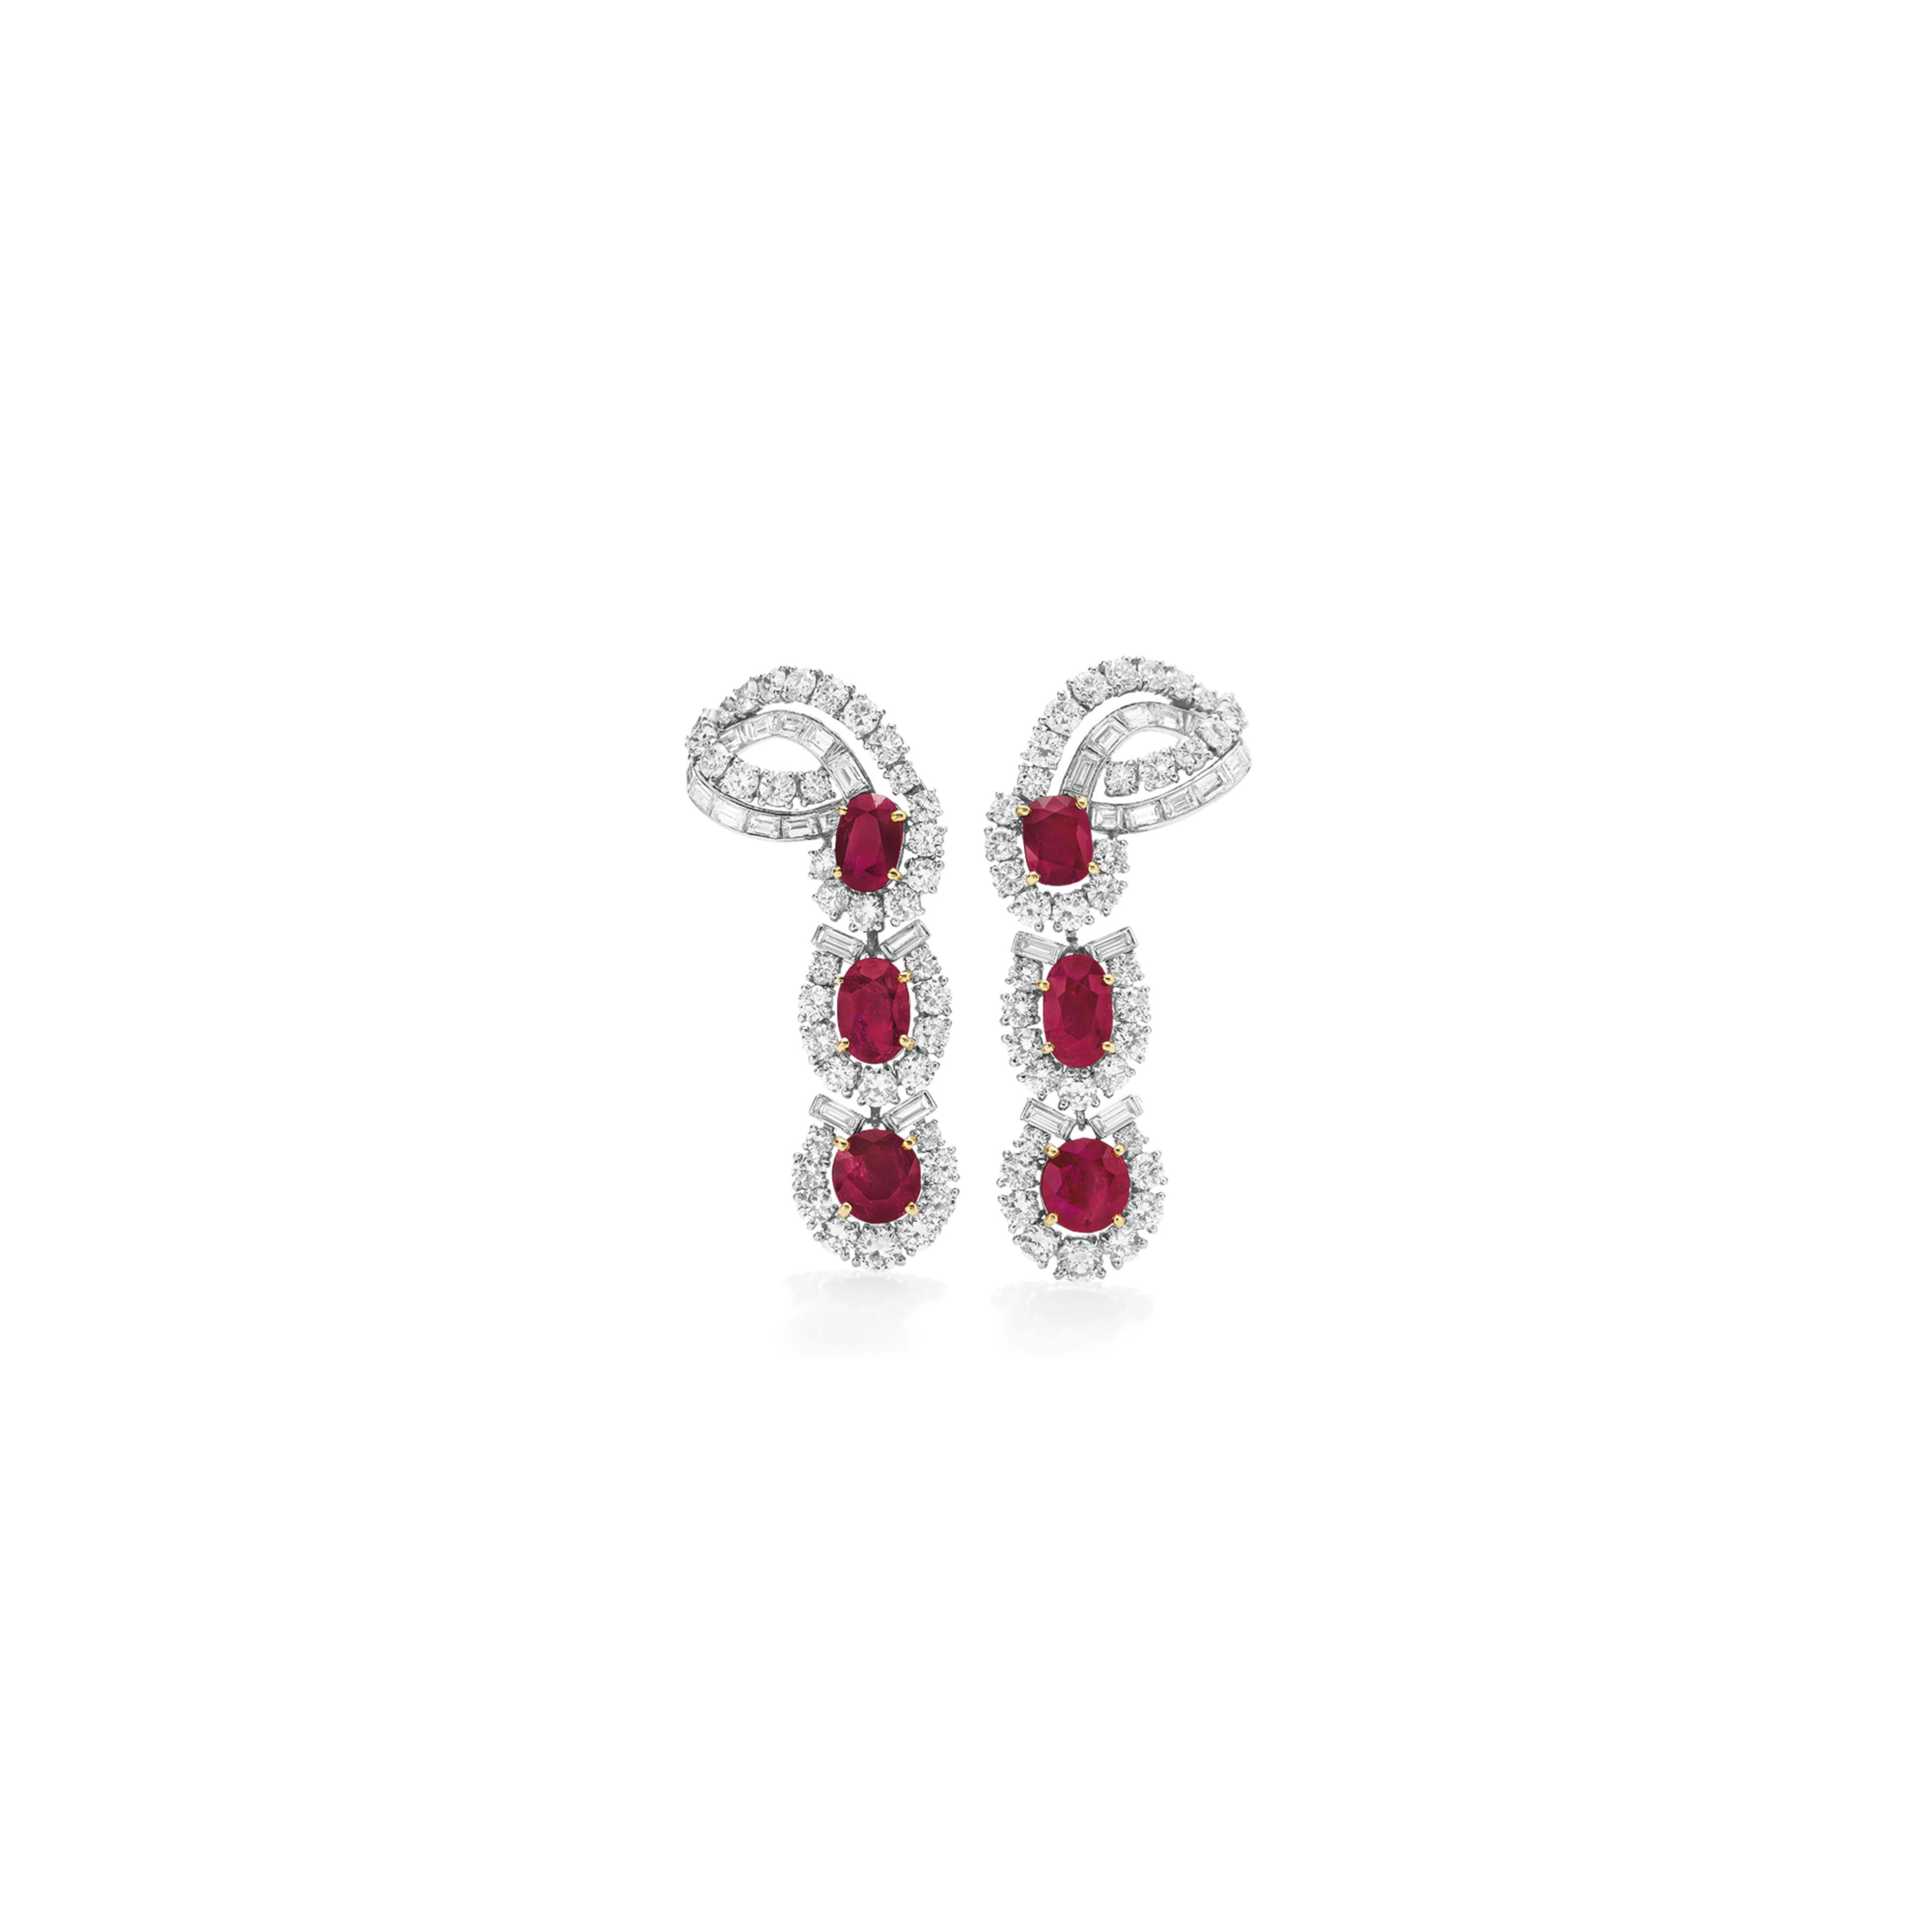 A PAIR OF RUBY AND DIAMOND EAR PENDANTS, BY CARTIER